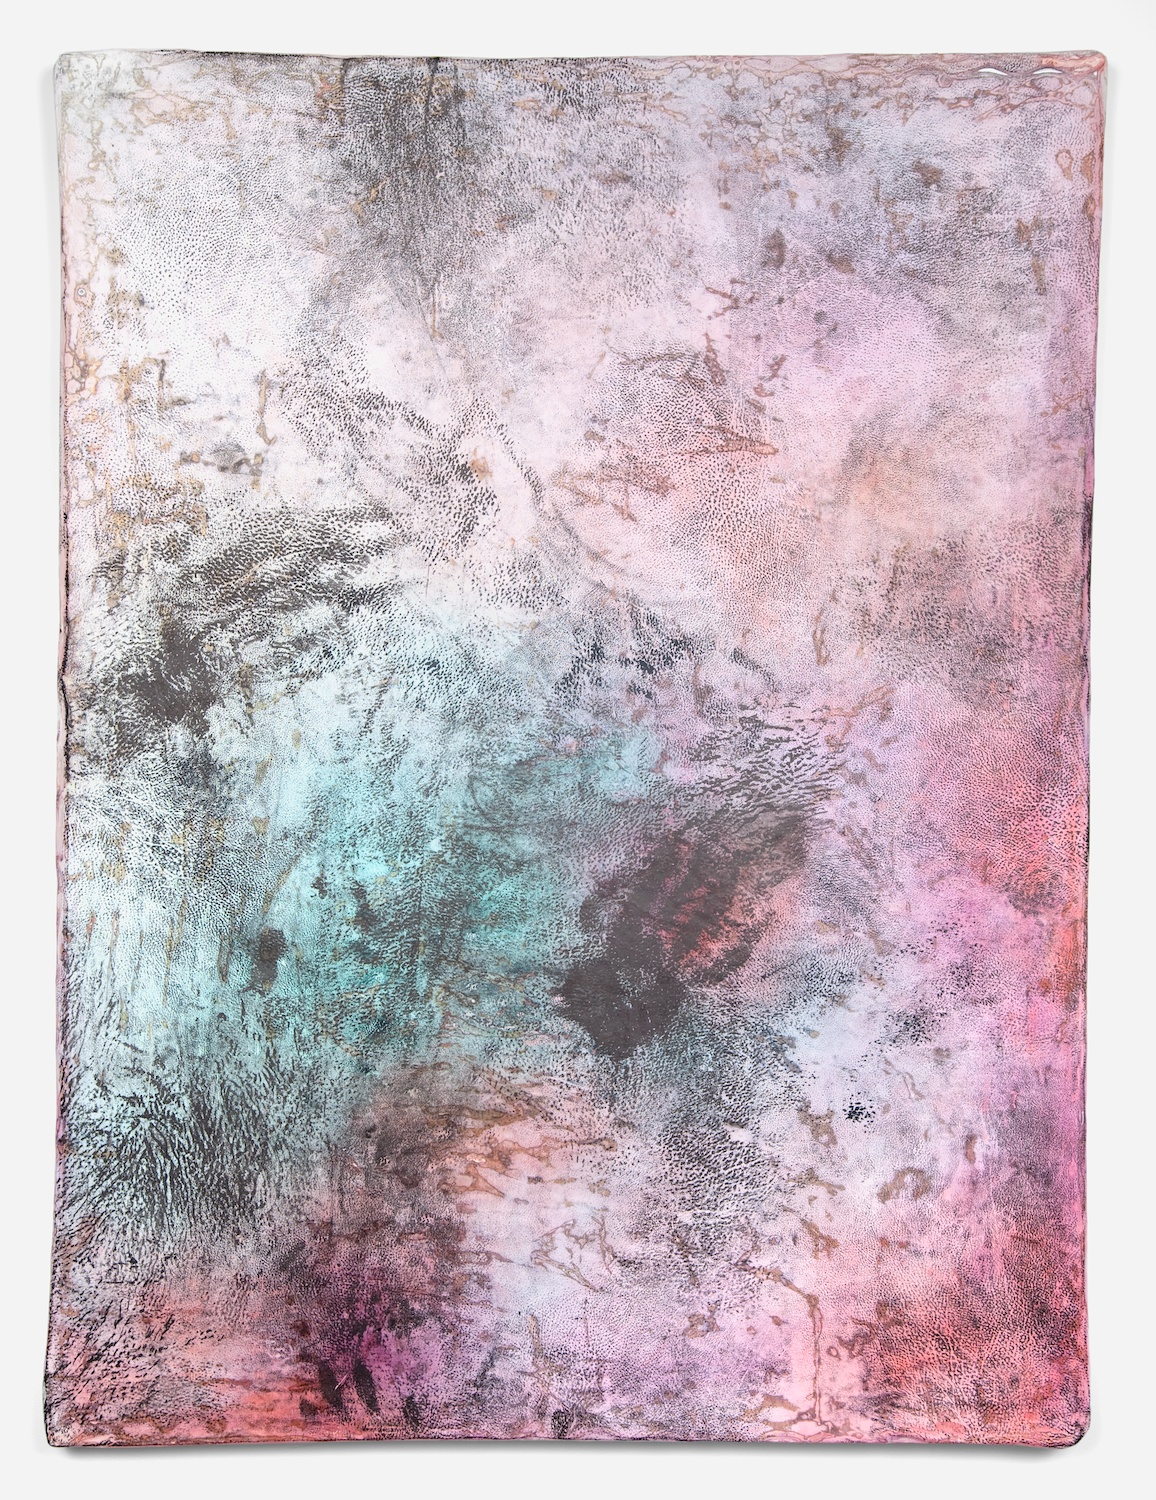 Jay Heikes  Margin Walker  2011 Paper, aluminum, dry pigment, ink, and wood 49 ¼h x 37w in JH032